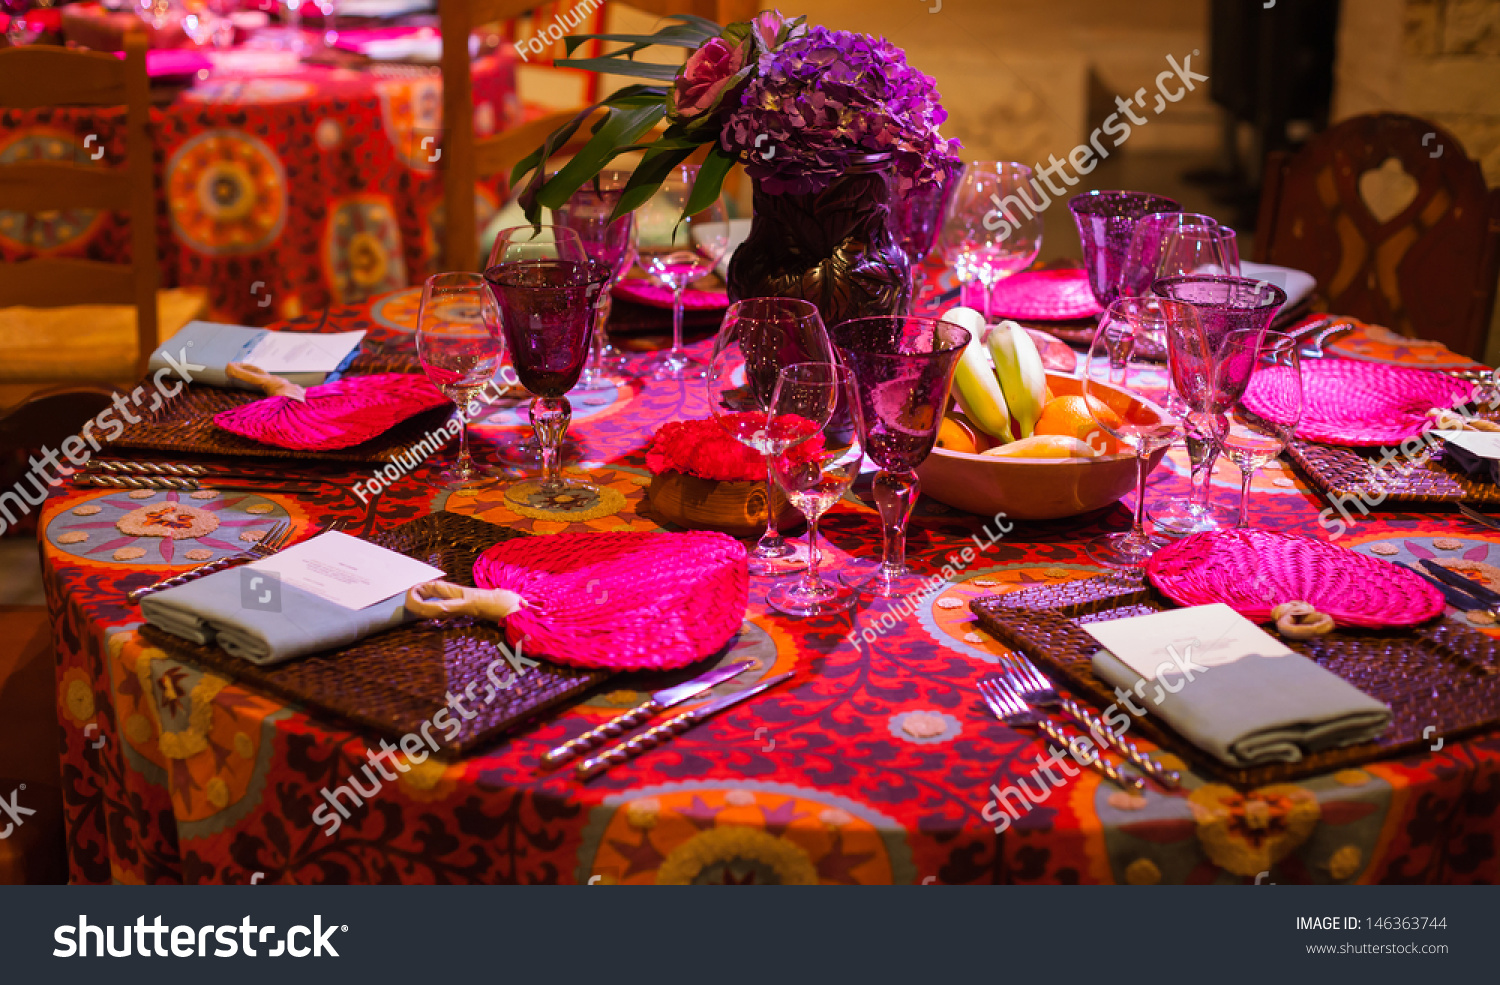 Elegant dinner table setting - Elegant Dinner Table Setting With A Polynesian Theme